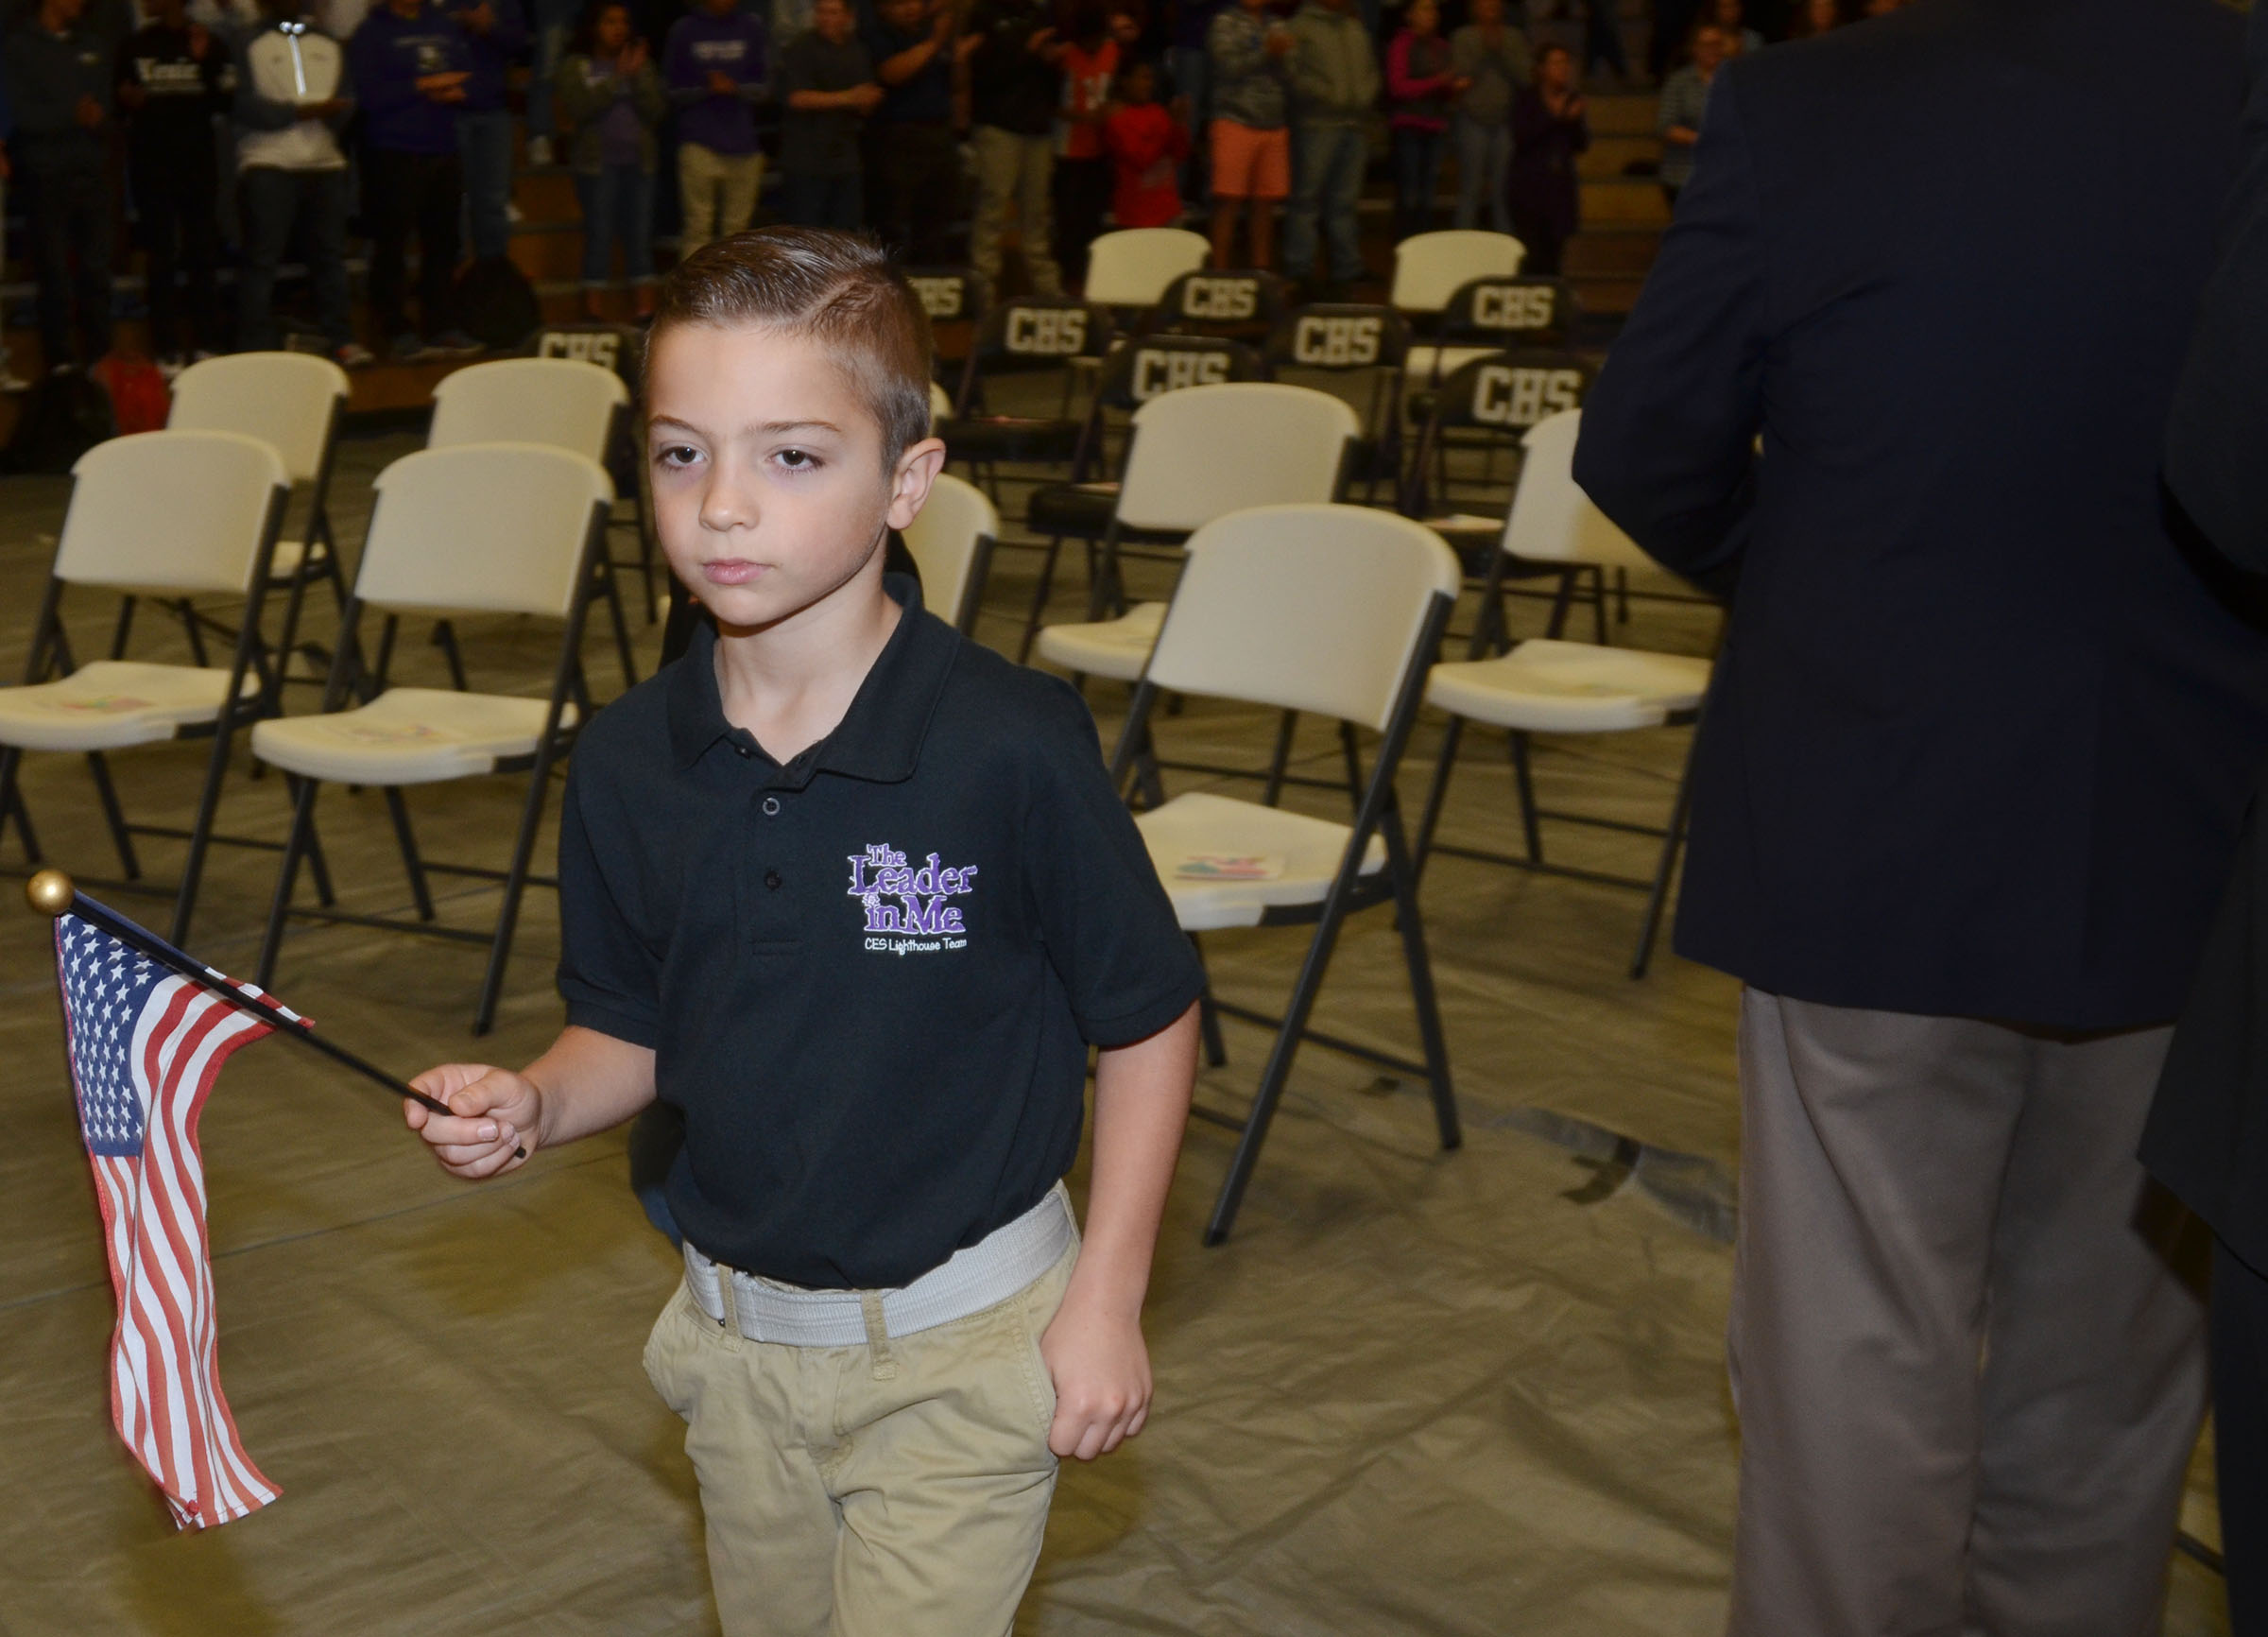 CES third-grader Carson Mills, a member of the school's Lighthouse Team, leads veterans to their seats.